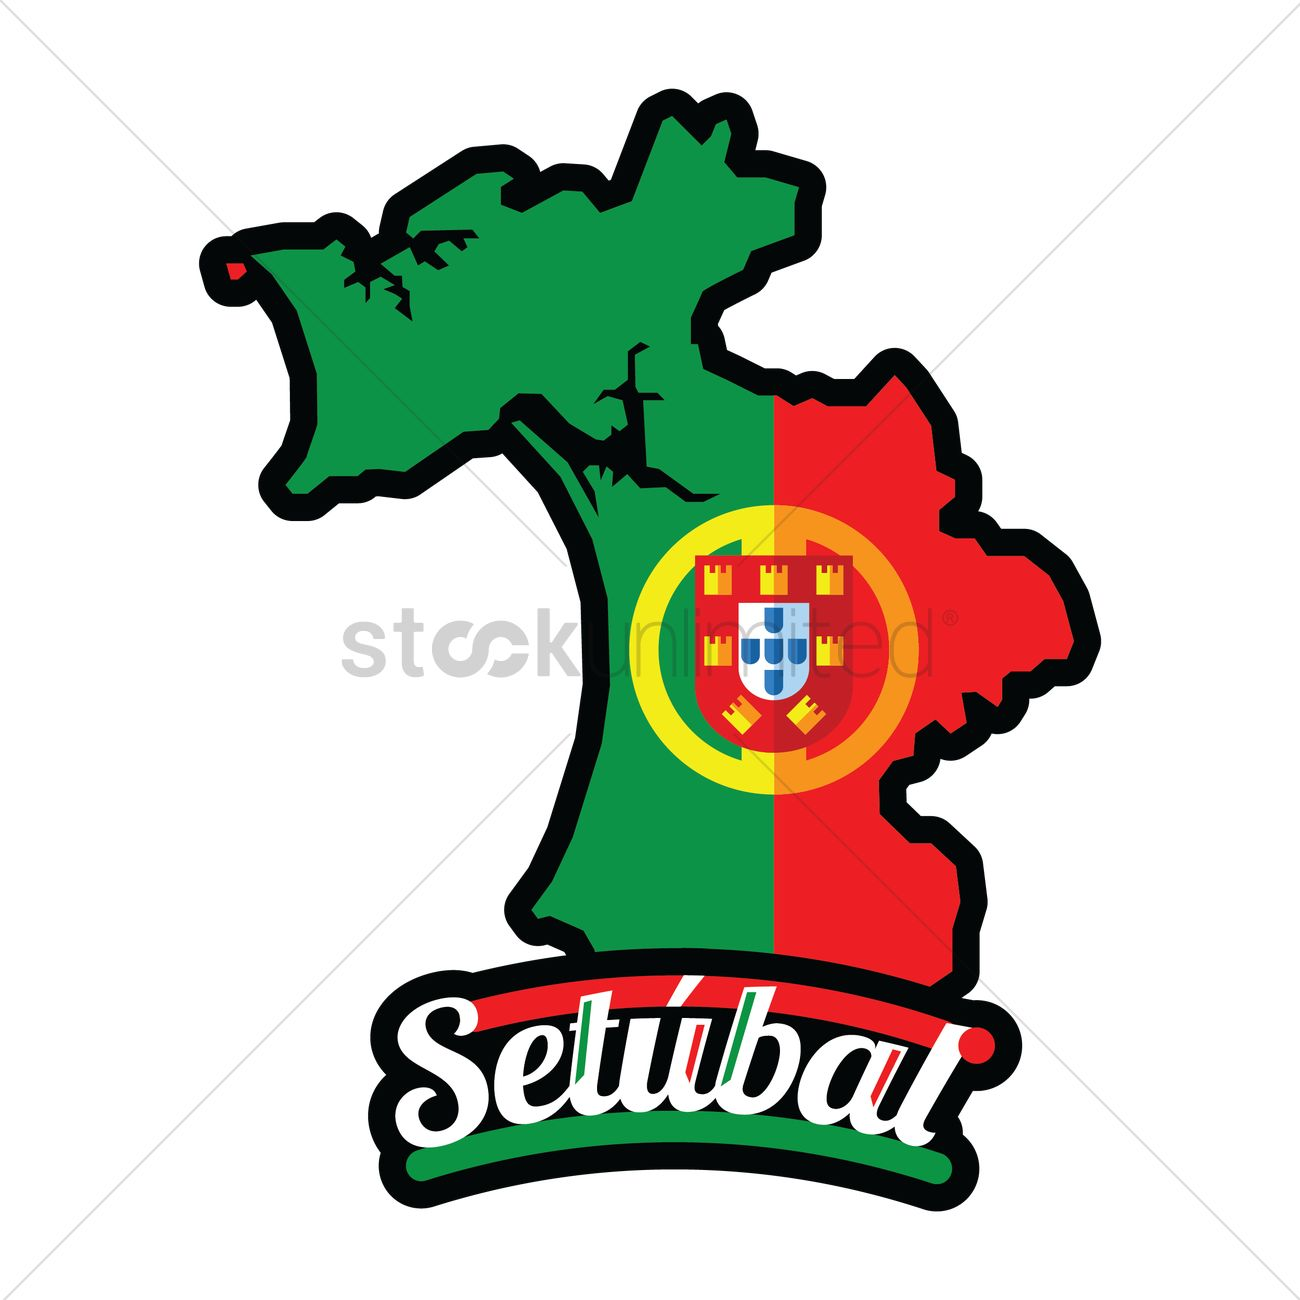 Setubal map Vector Image 1582665 StockUnlimited